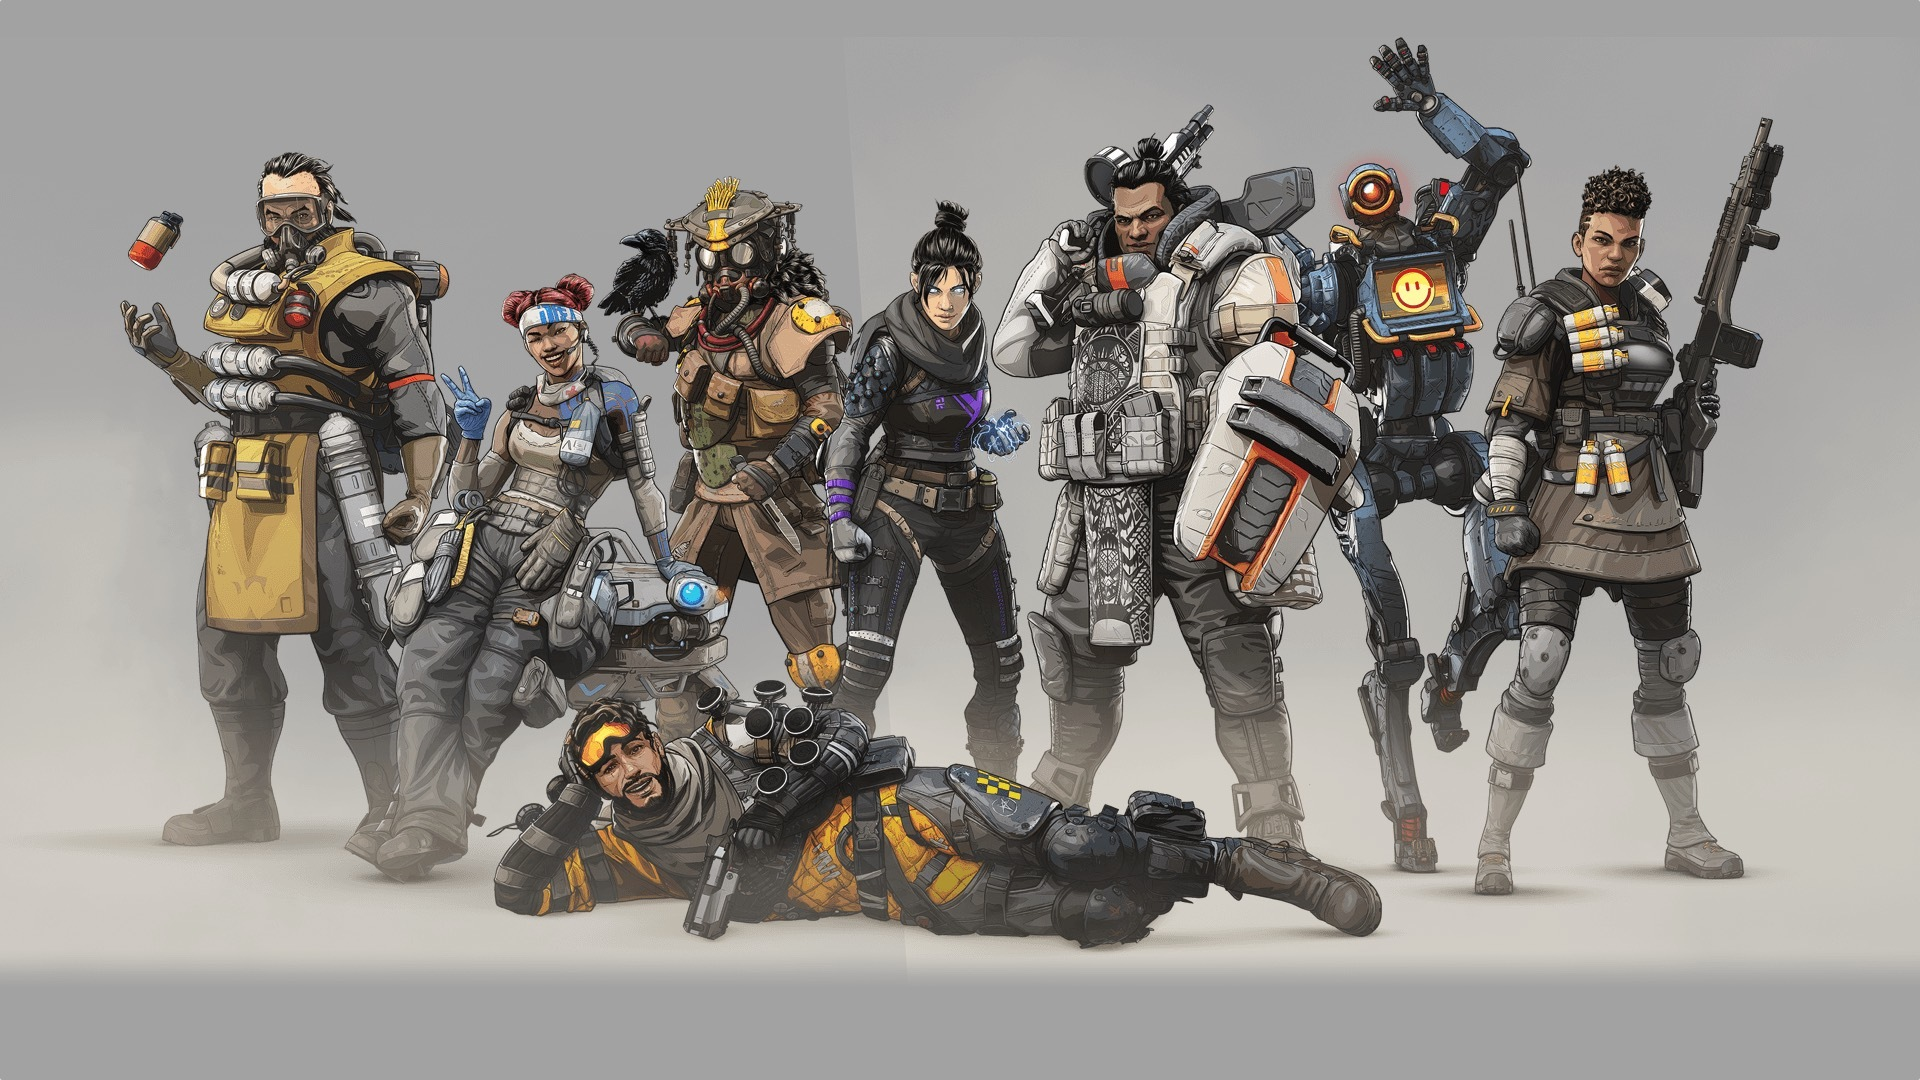 Top 13 Apex Legends Wallpapers in Full HD and 4K 1920x1080